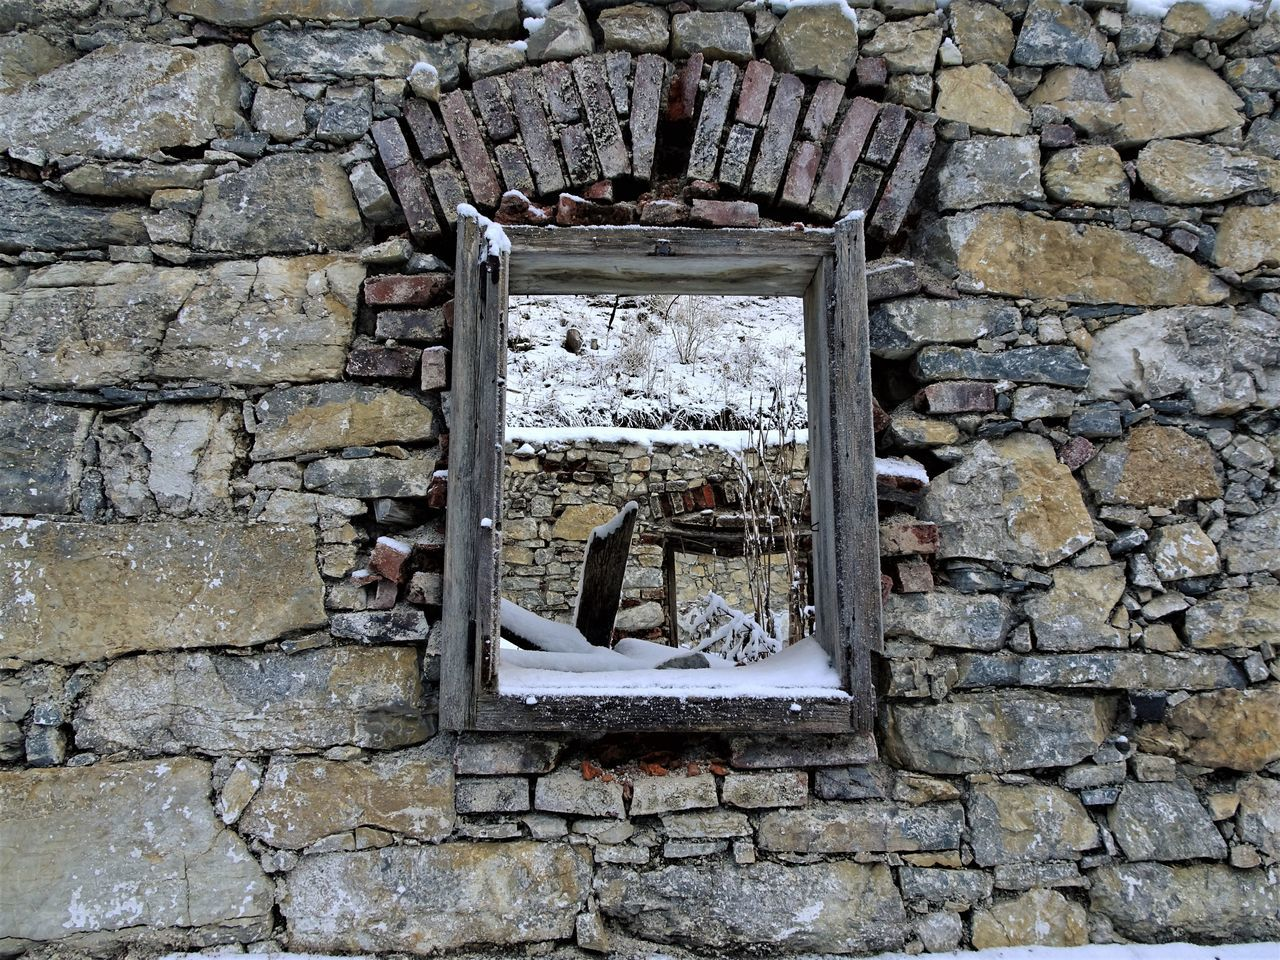 architecture, built structure, stone wall, brick wall, window, building exterior, no people, stone material, day, damaged, abandoned, outdoors, close-up